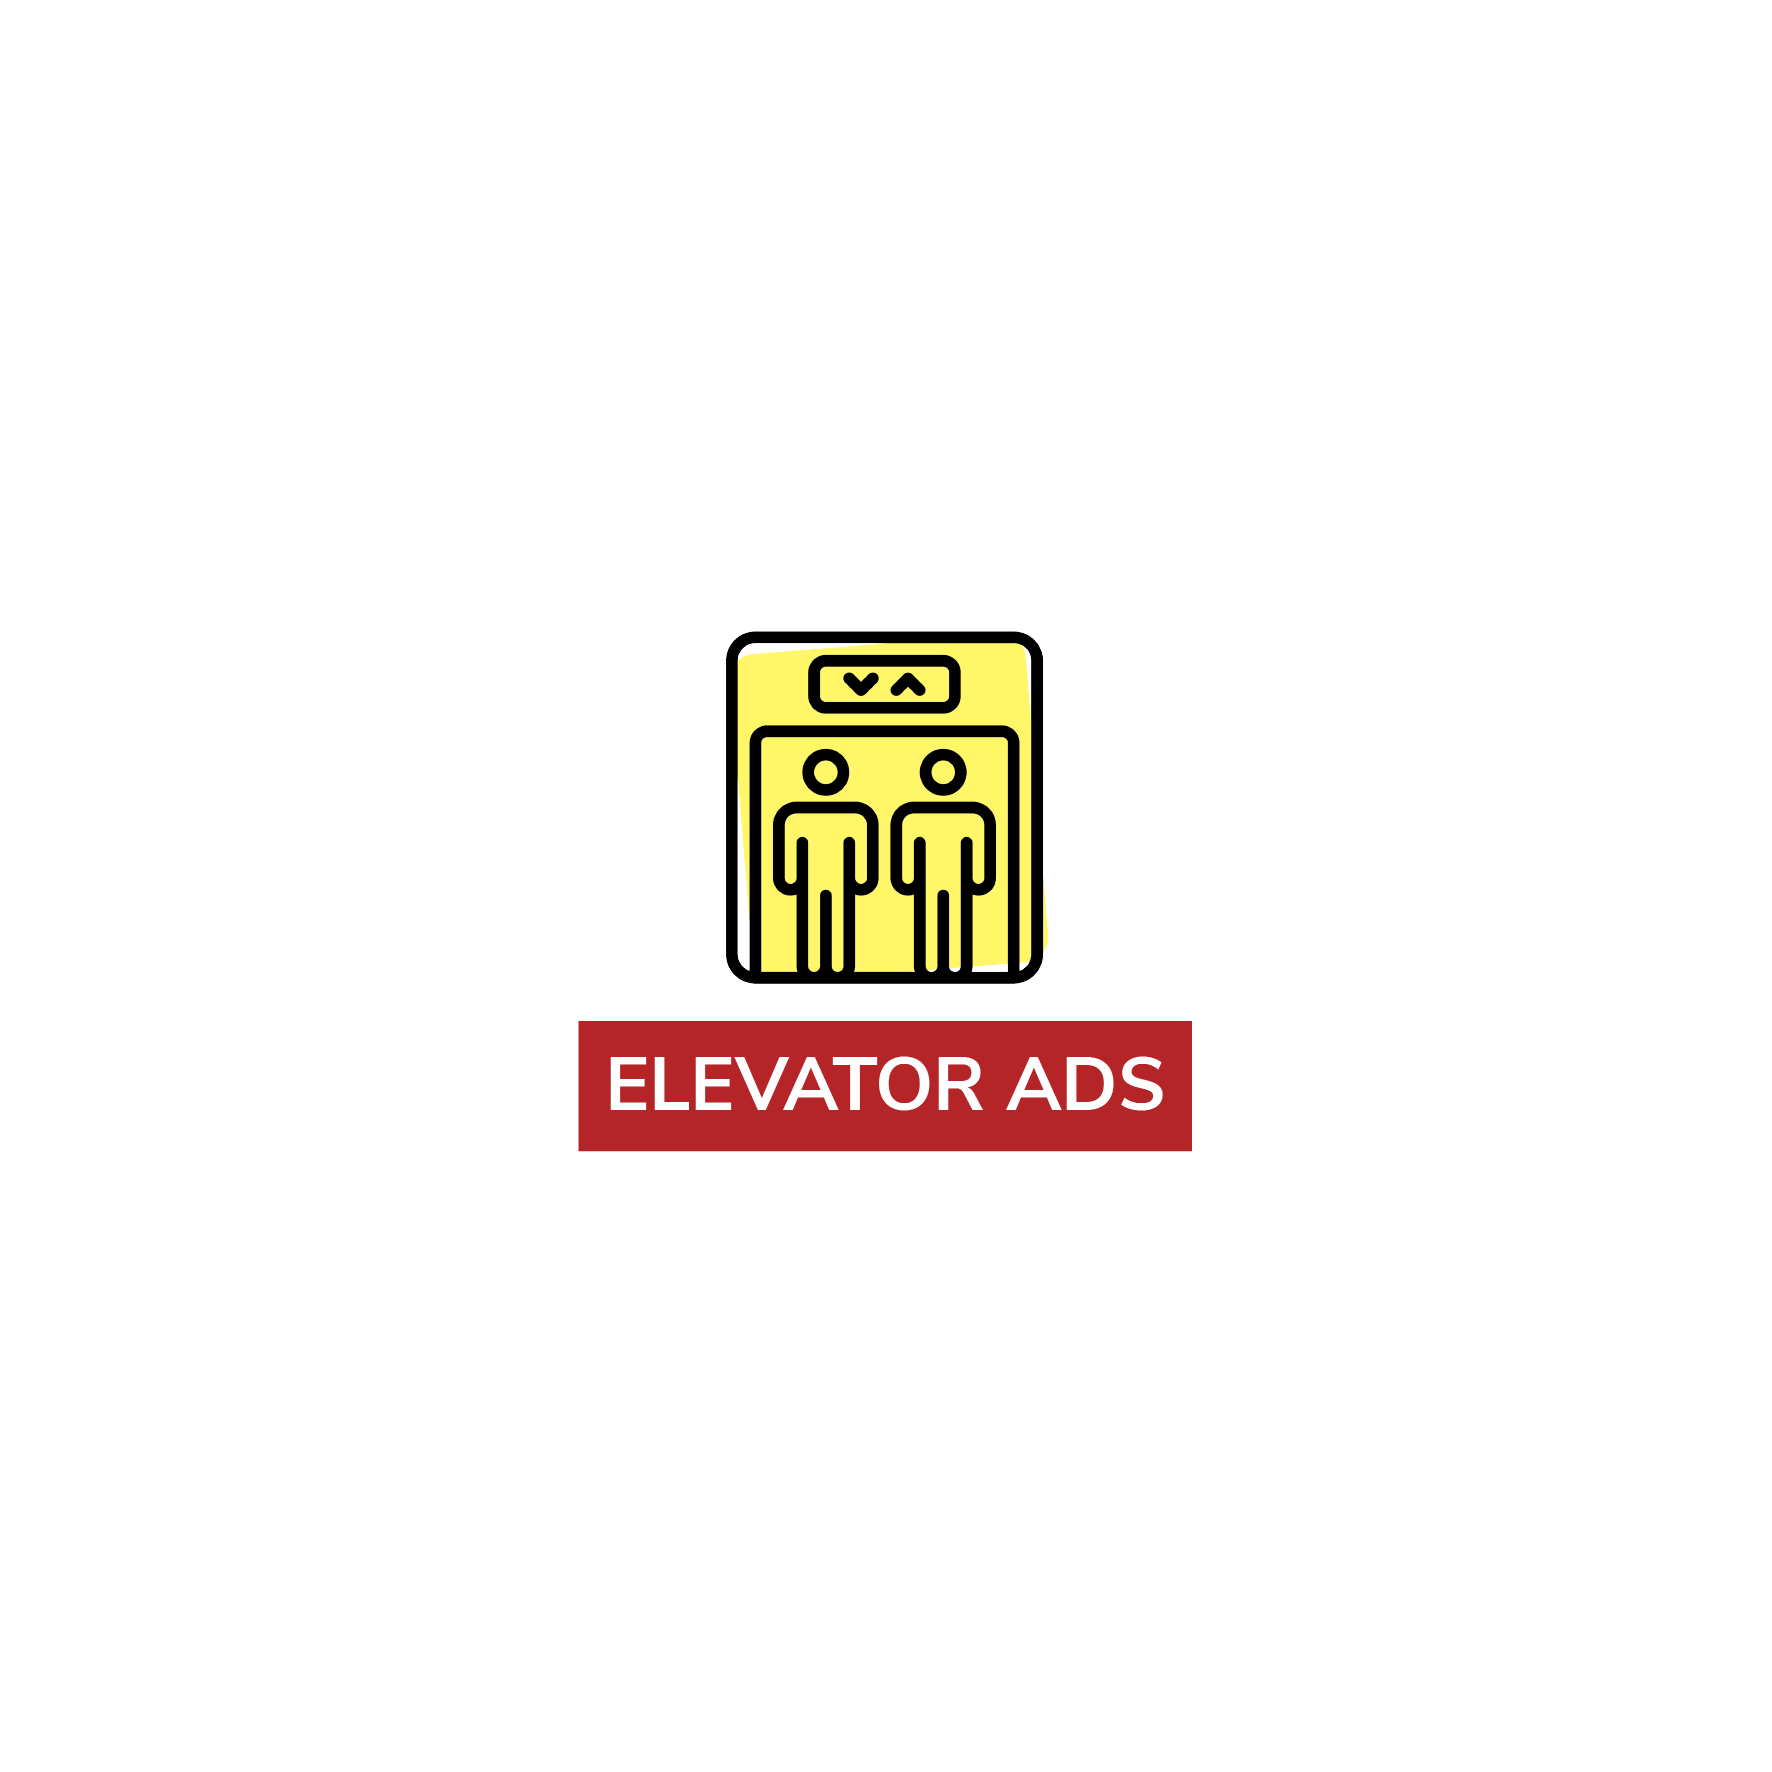 elevator advertisements - png